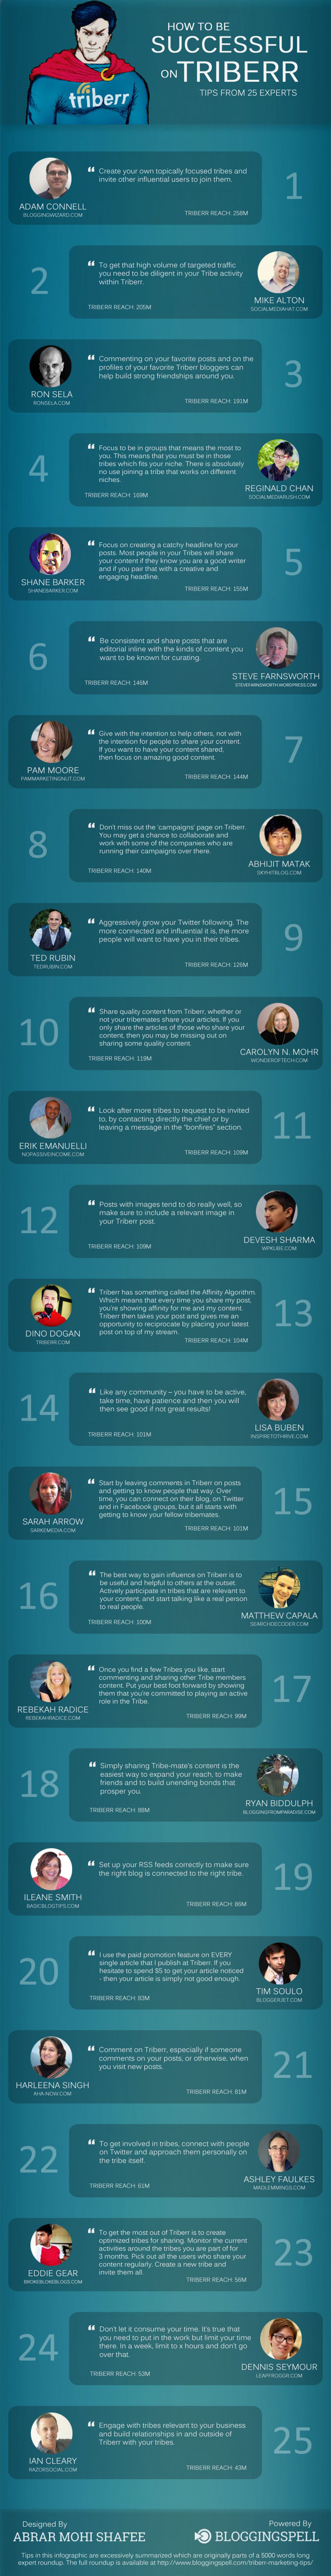 How to Be Successful on Triberr - 25 Experts Share Tips Infographic